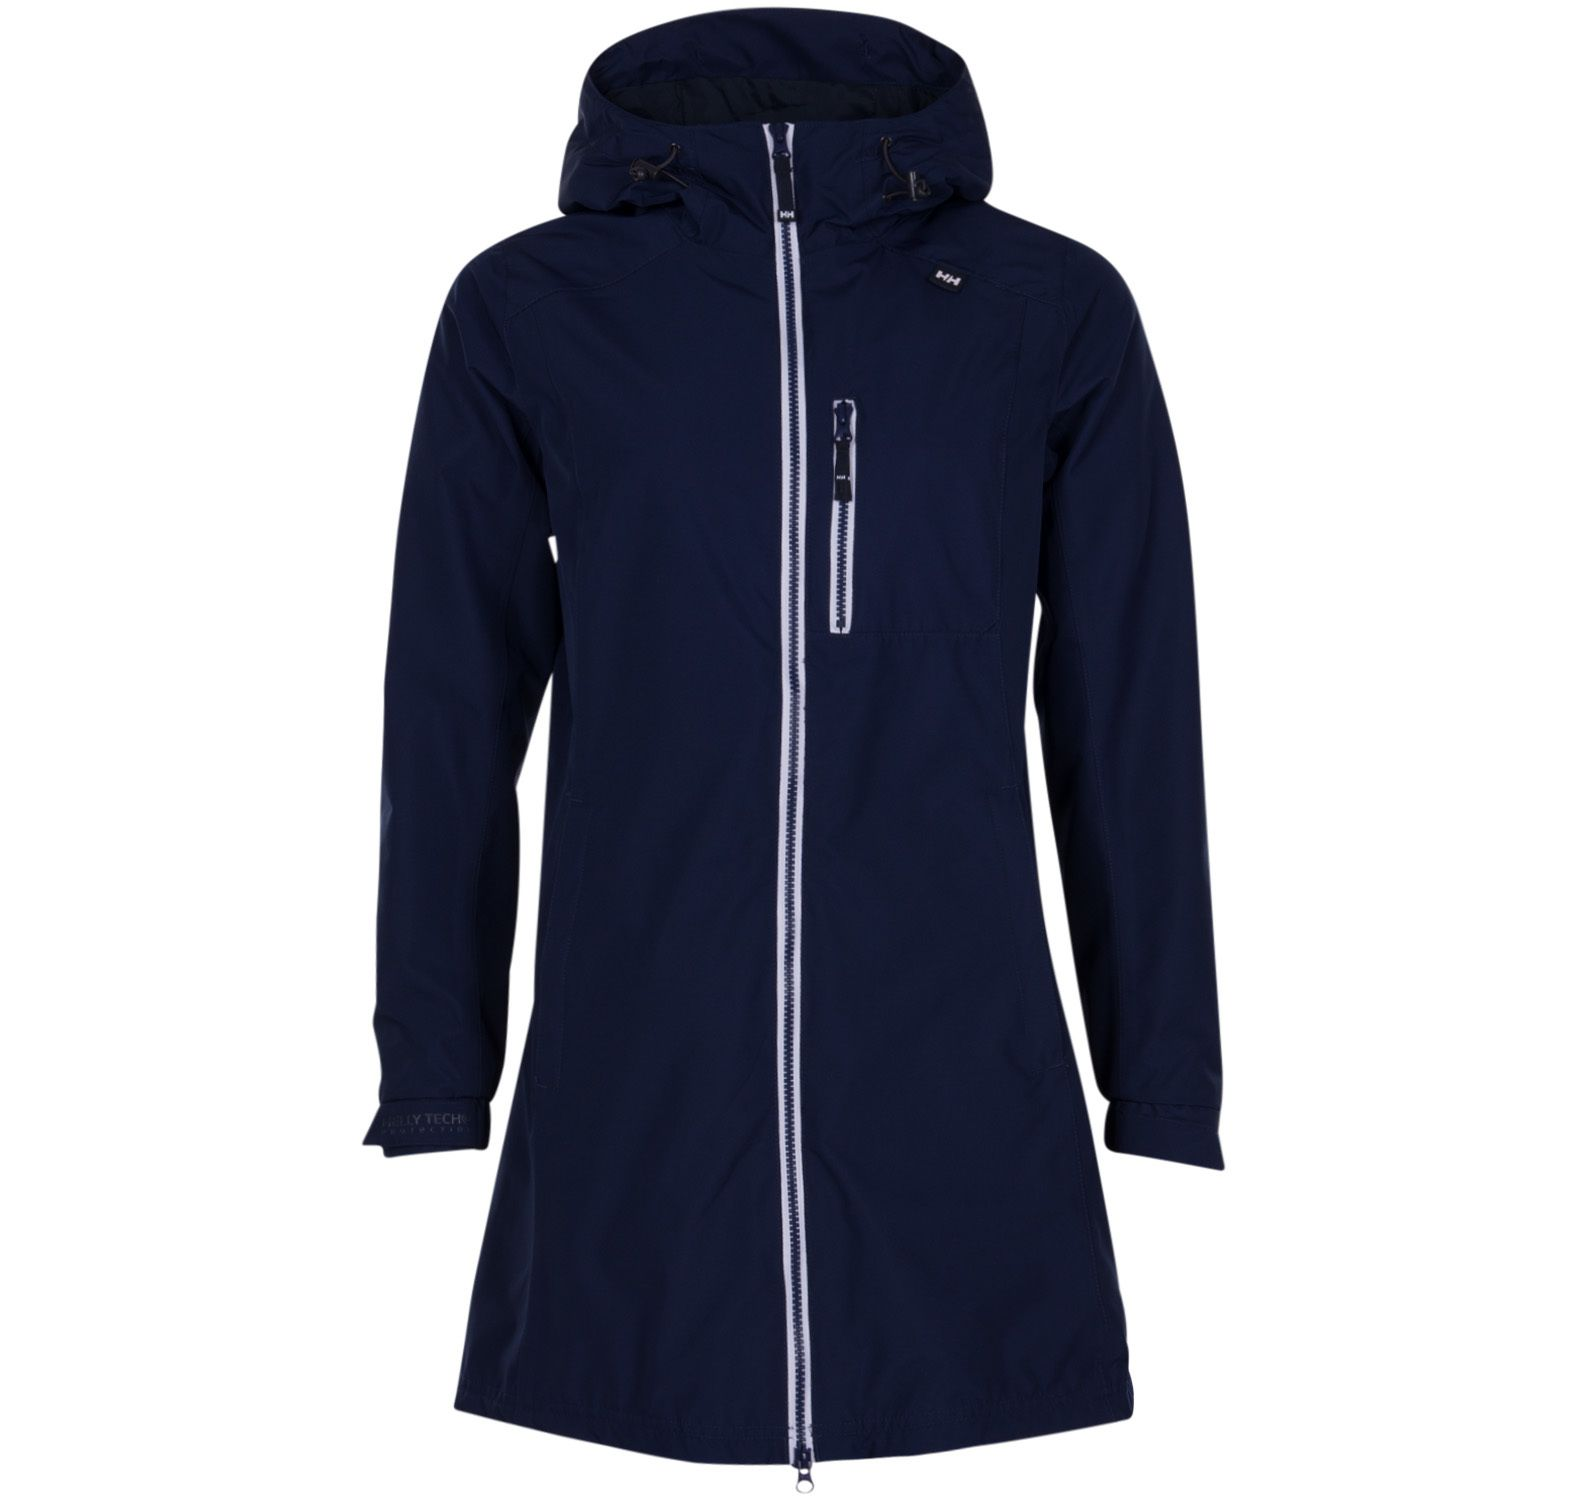 w long belfast jacket, evening blue, xxl, helly hansen